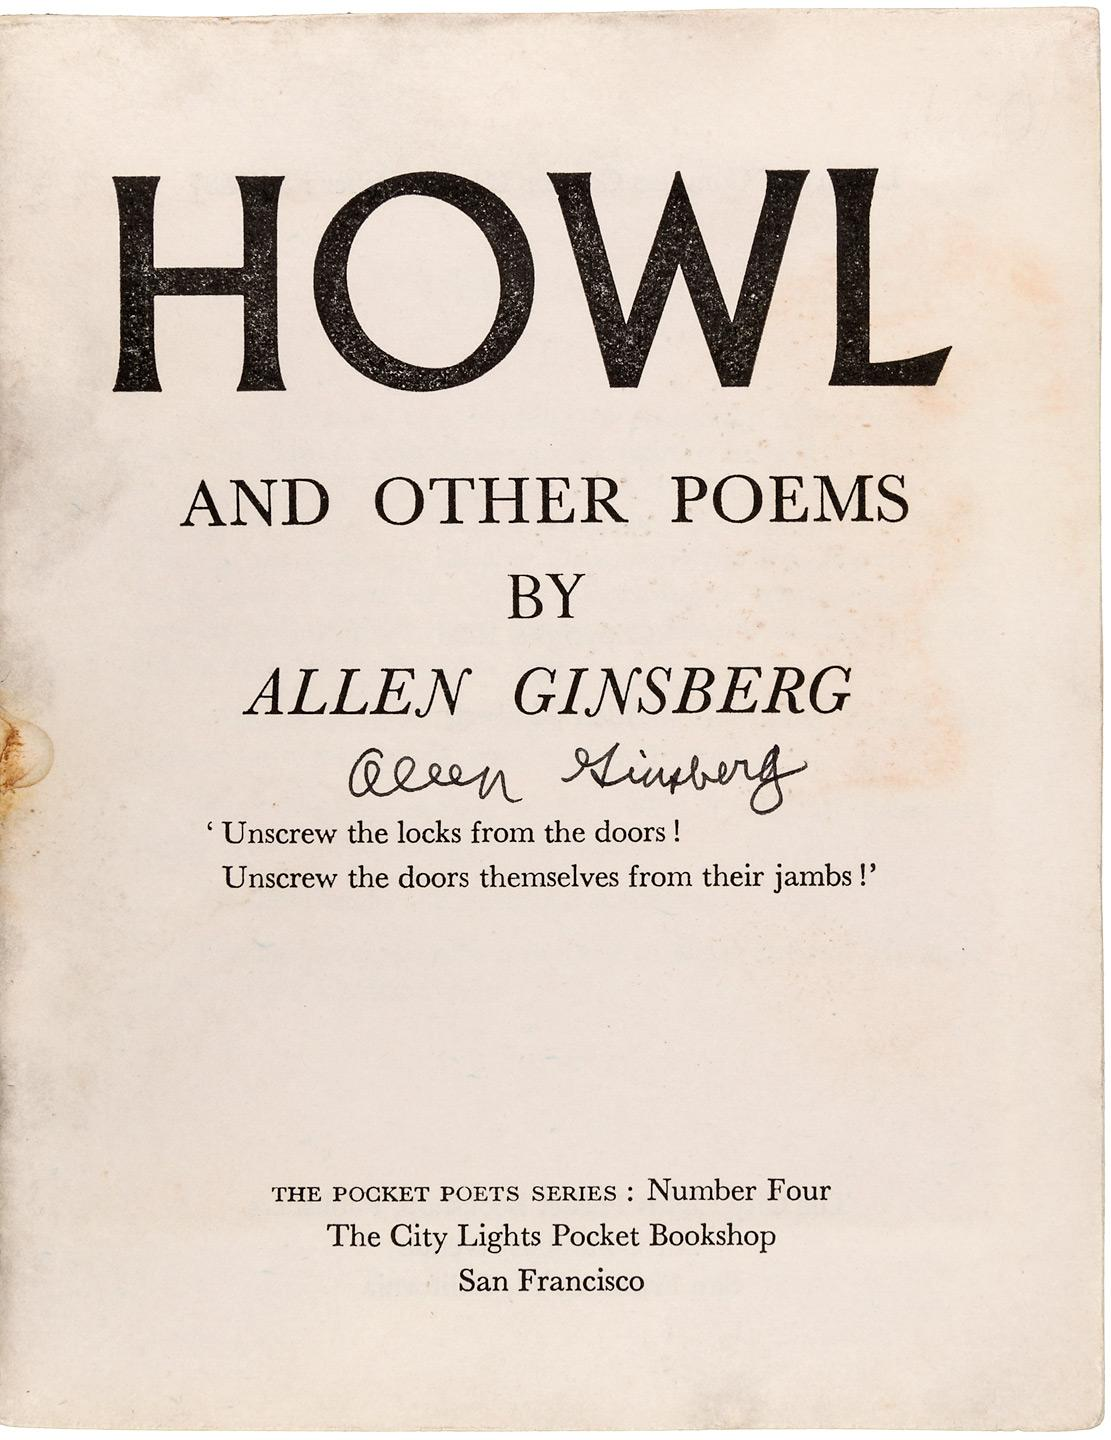 review of allen ginsbergs poem the howl What is the poem howl by allen ginsberg about  when will howl by allen ginsberg enter the public domain what inspired allen ginsberg in writing the howl poem.